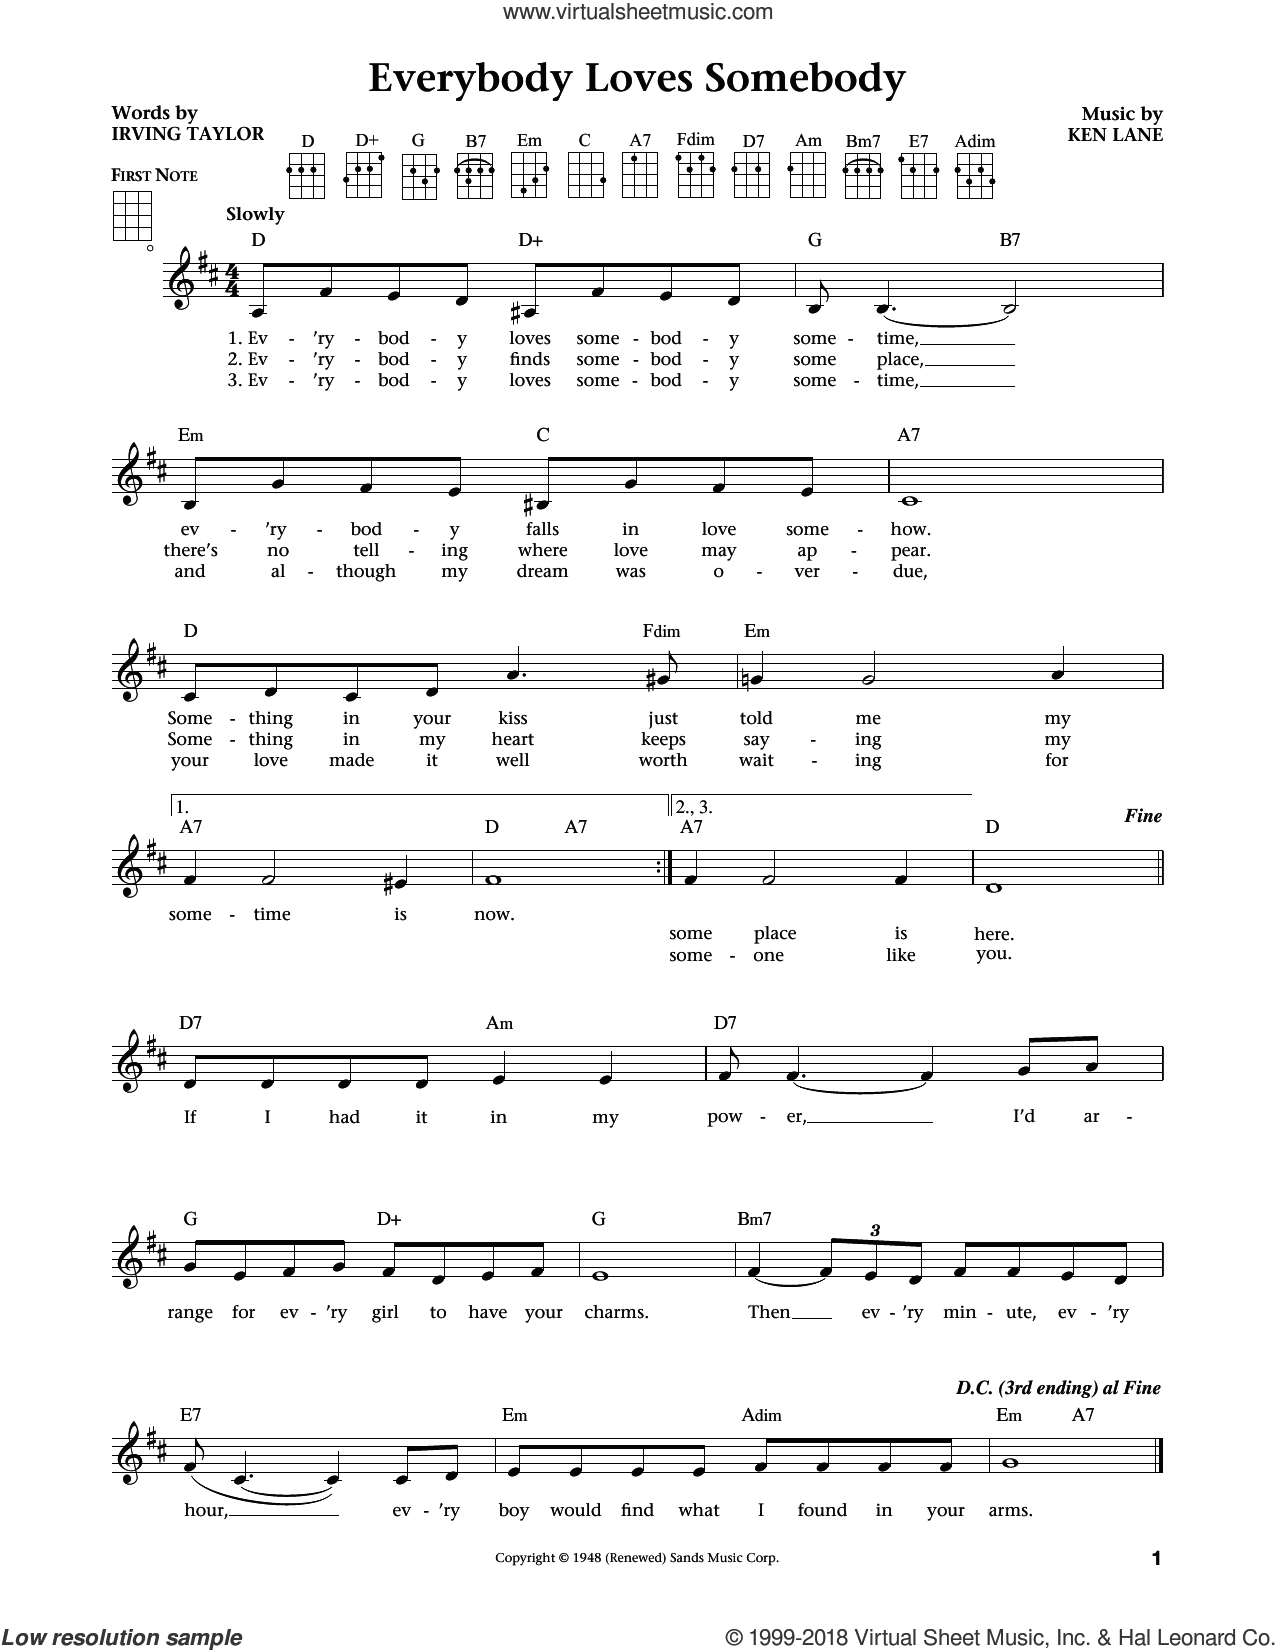 Everybody Loves Somebody (from The Daily Ukulele) (arr. Liz and Jim Beloff) sheet music for ukulele by Dean Martin, intermediate skill level